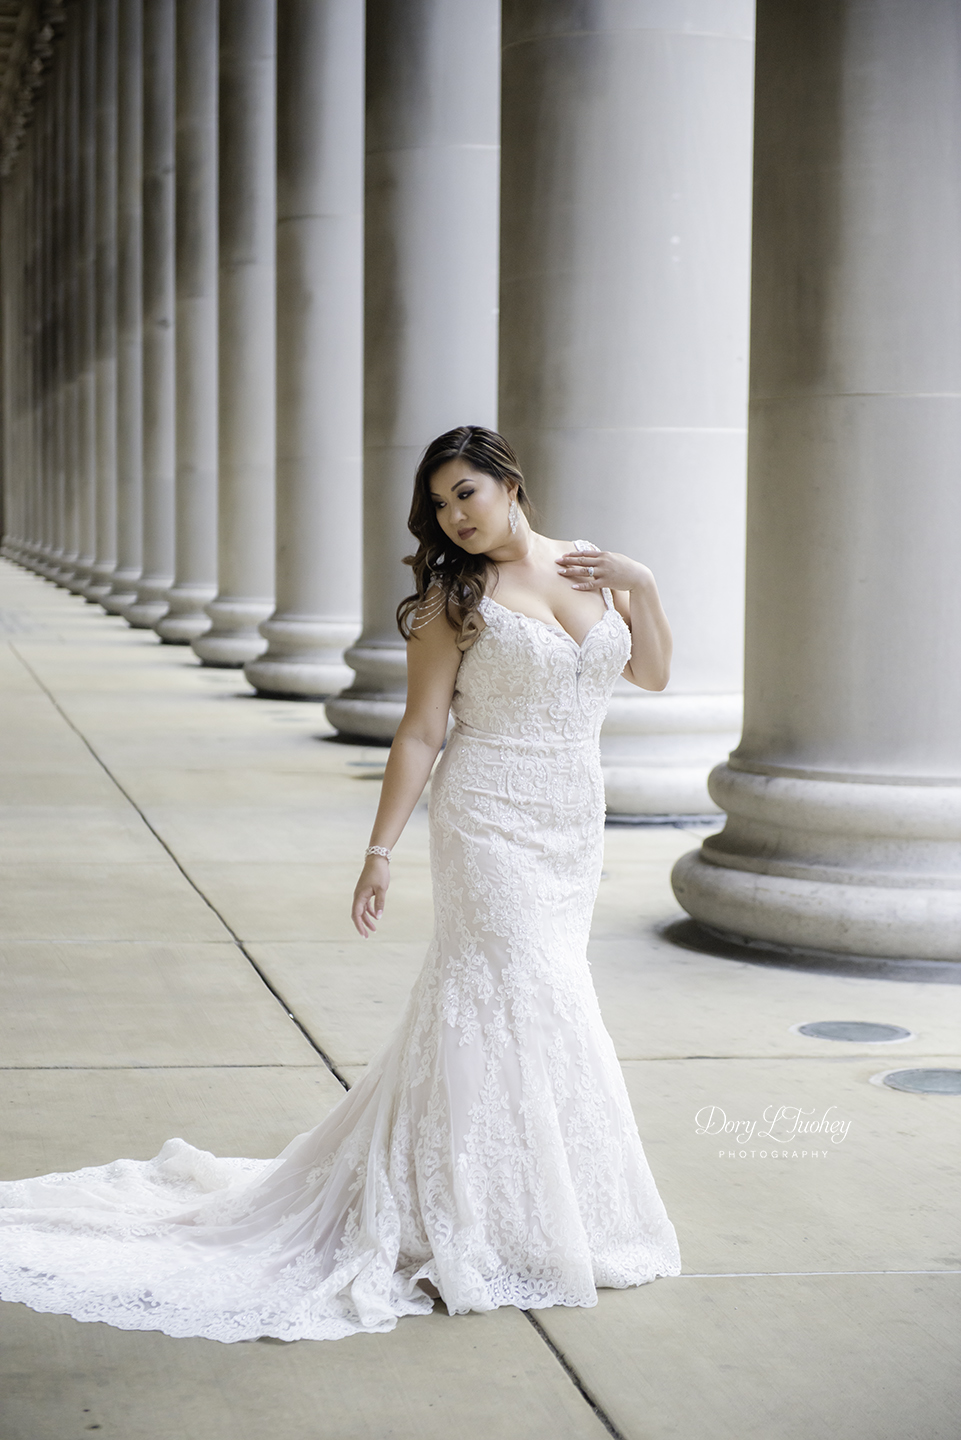 Chicago_wedding_photographer_bride_union_station_laos_thai_dory_03.jpg